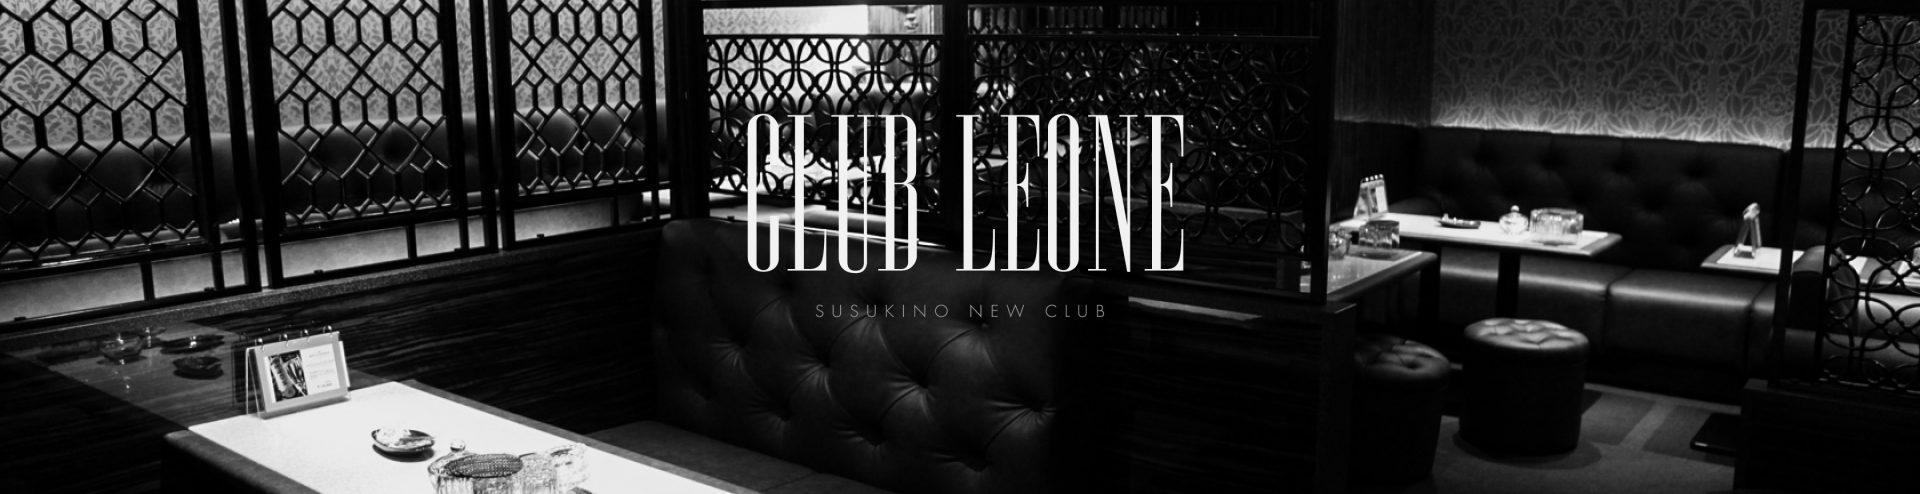 CLUBLEONE すすきの ニュークラブ